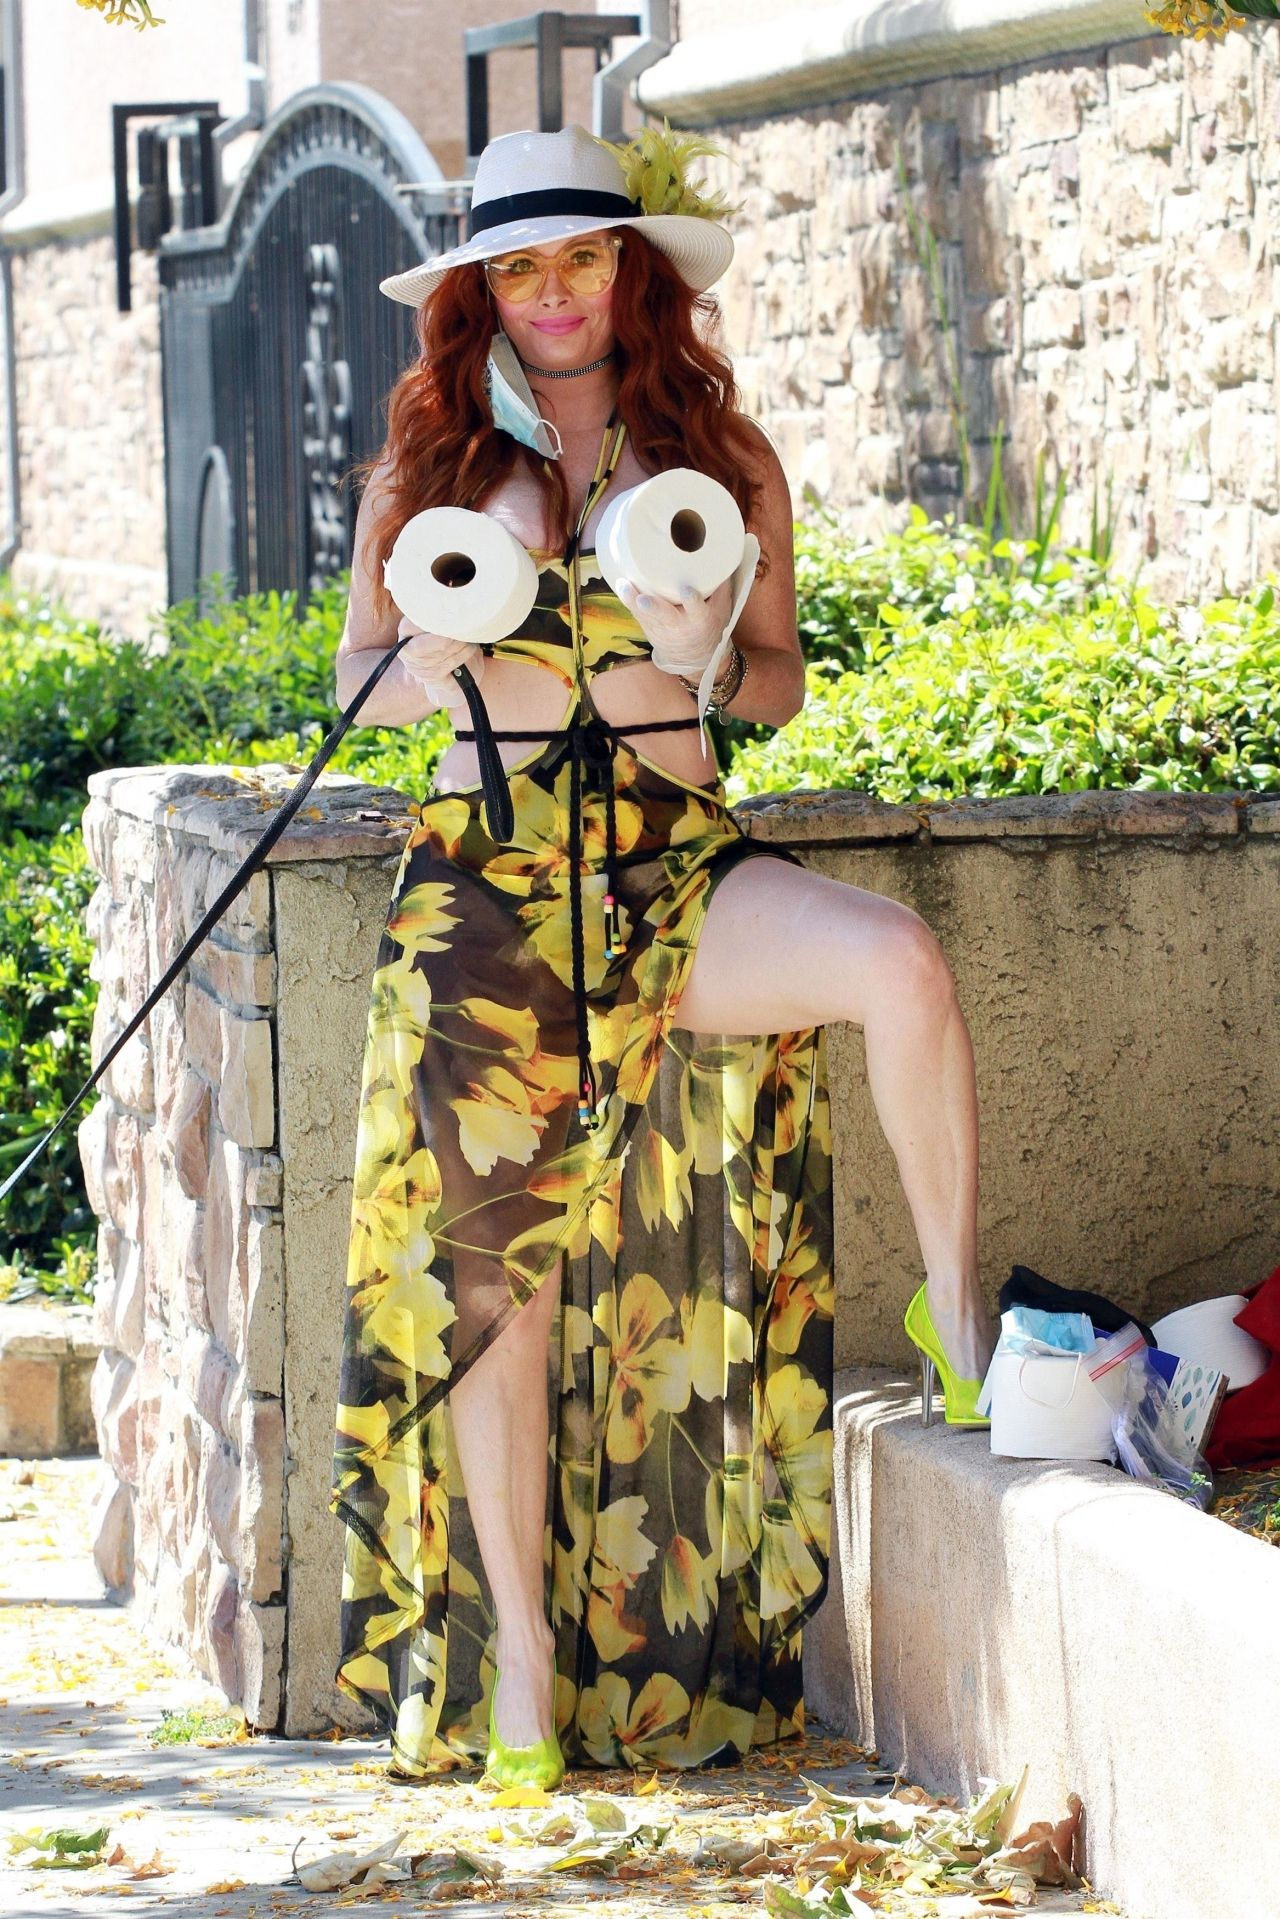 Phoebe Price In Floral Print Dress 04 23 2020